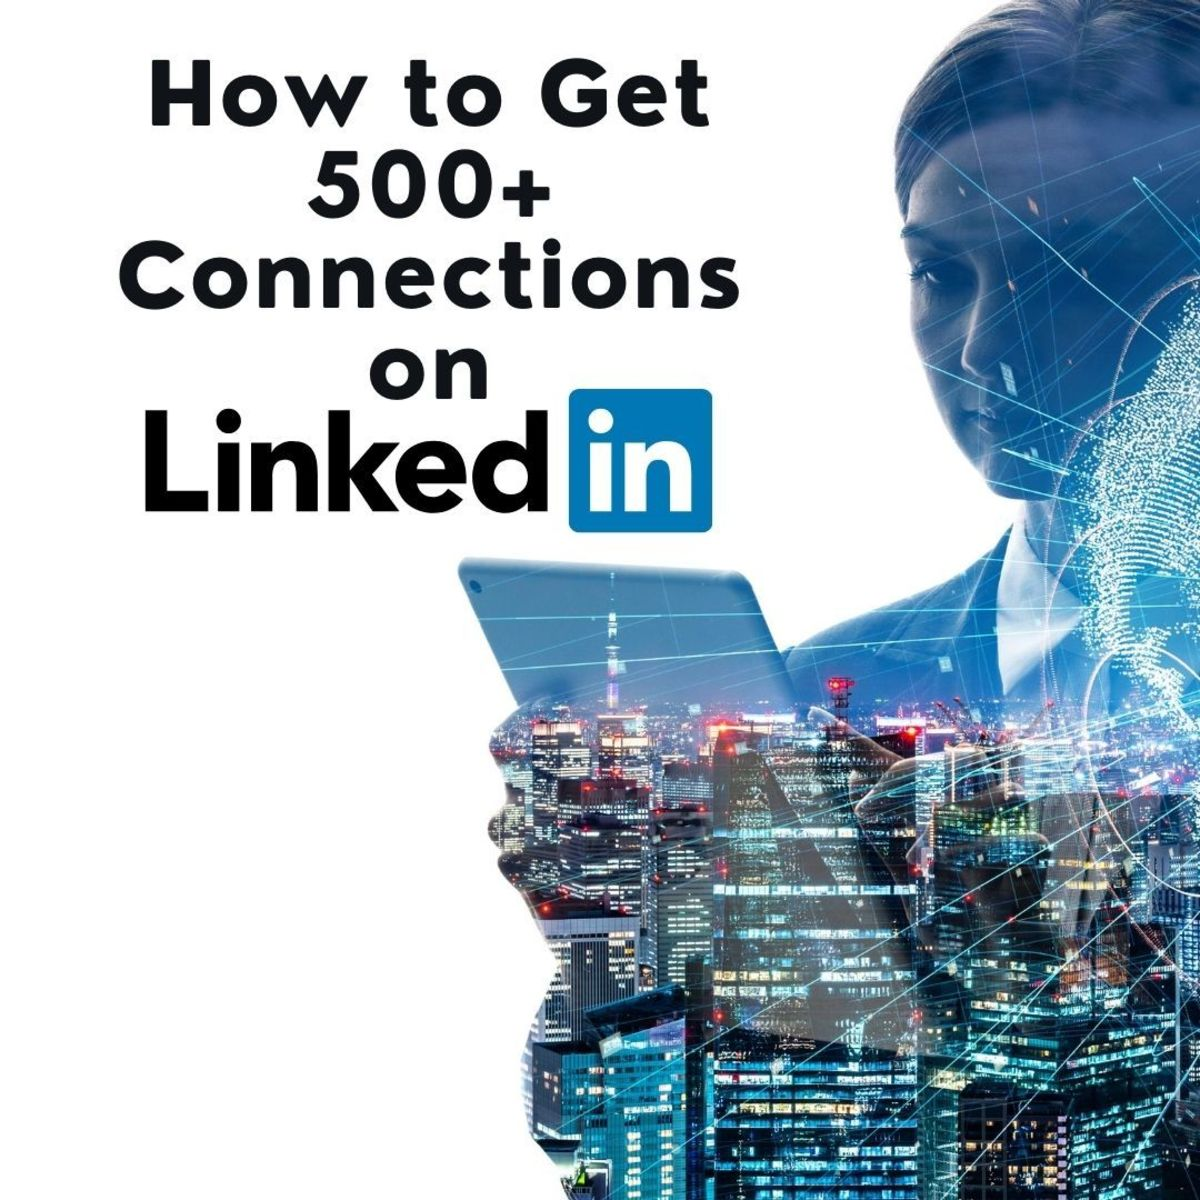 How to get 500+ LinkedIn connections in three weeks